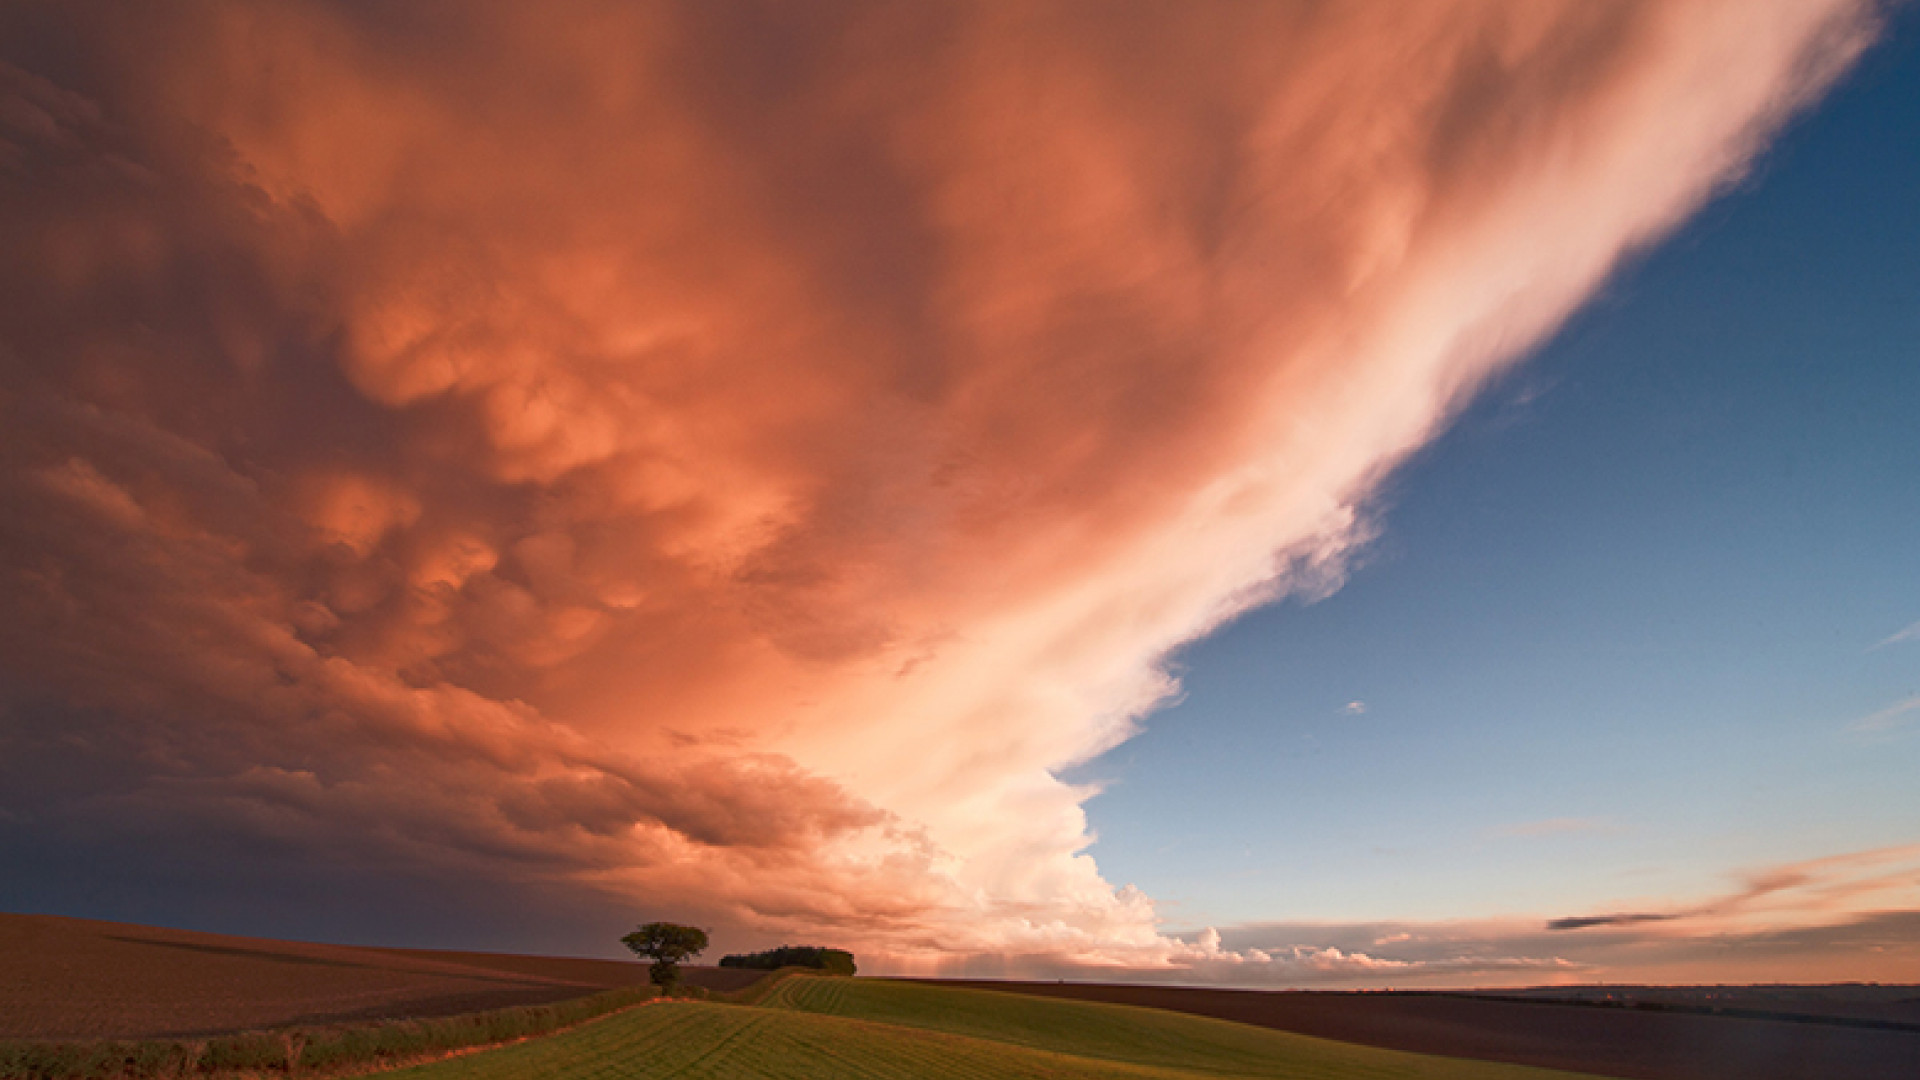 Colin-Mill,-Sunset-Stormclouds,-Commended,-Classic-View,2012